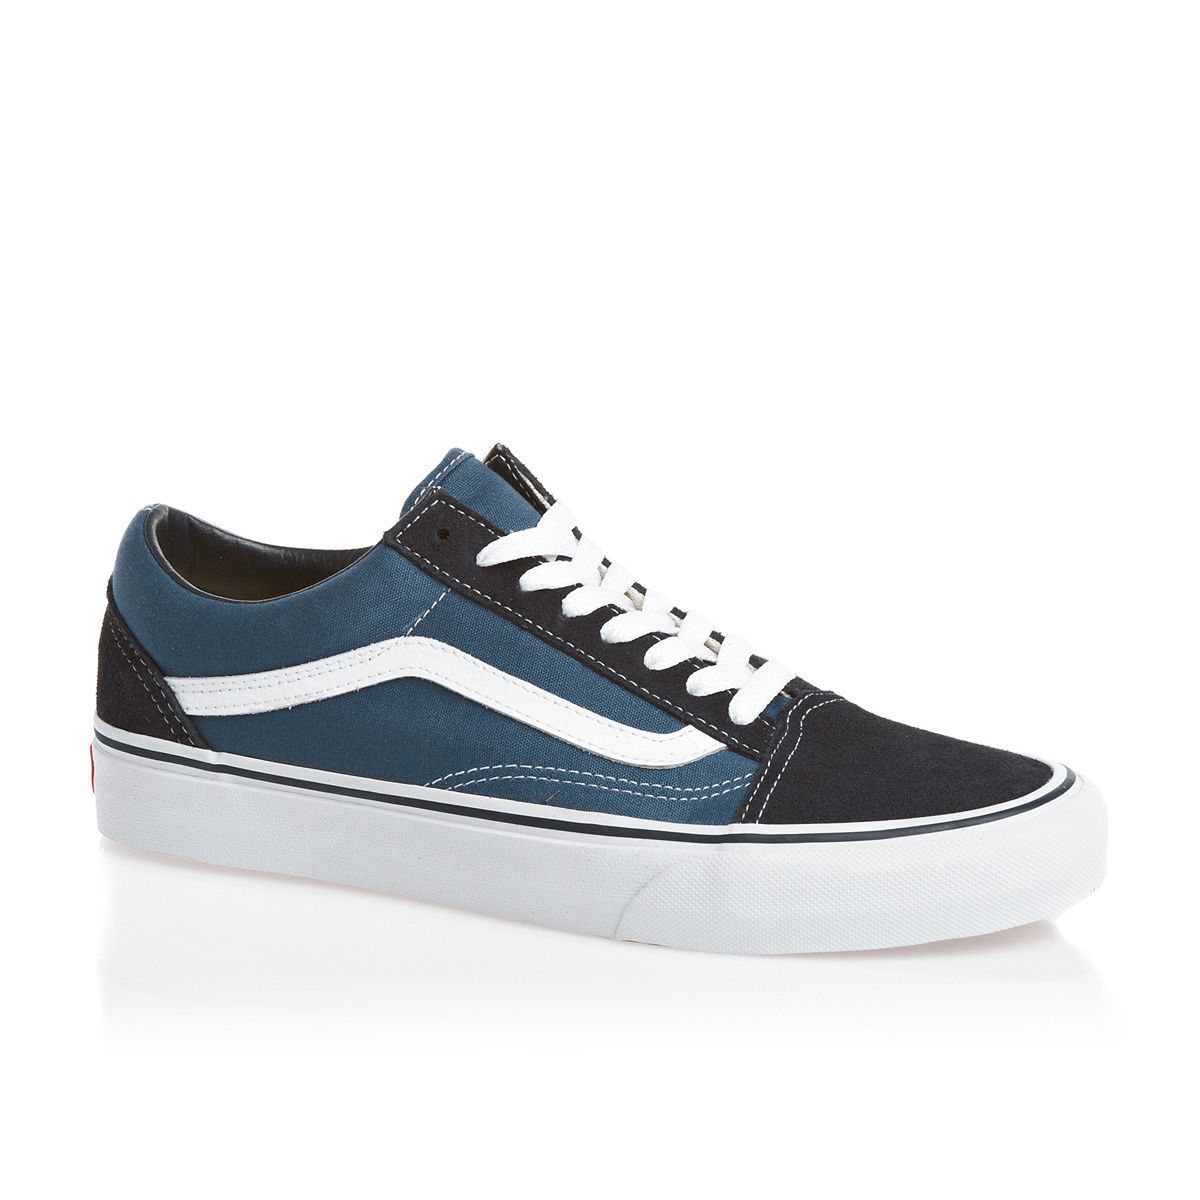 Vans blue and black old skool